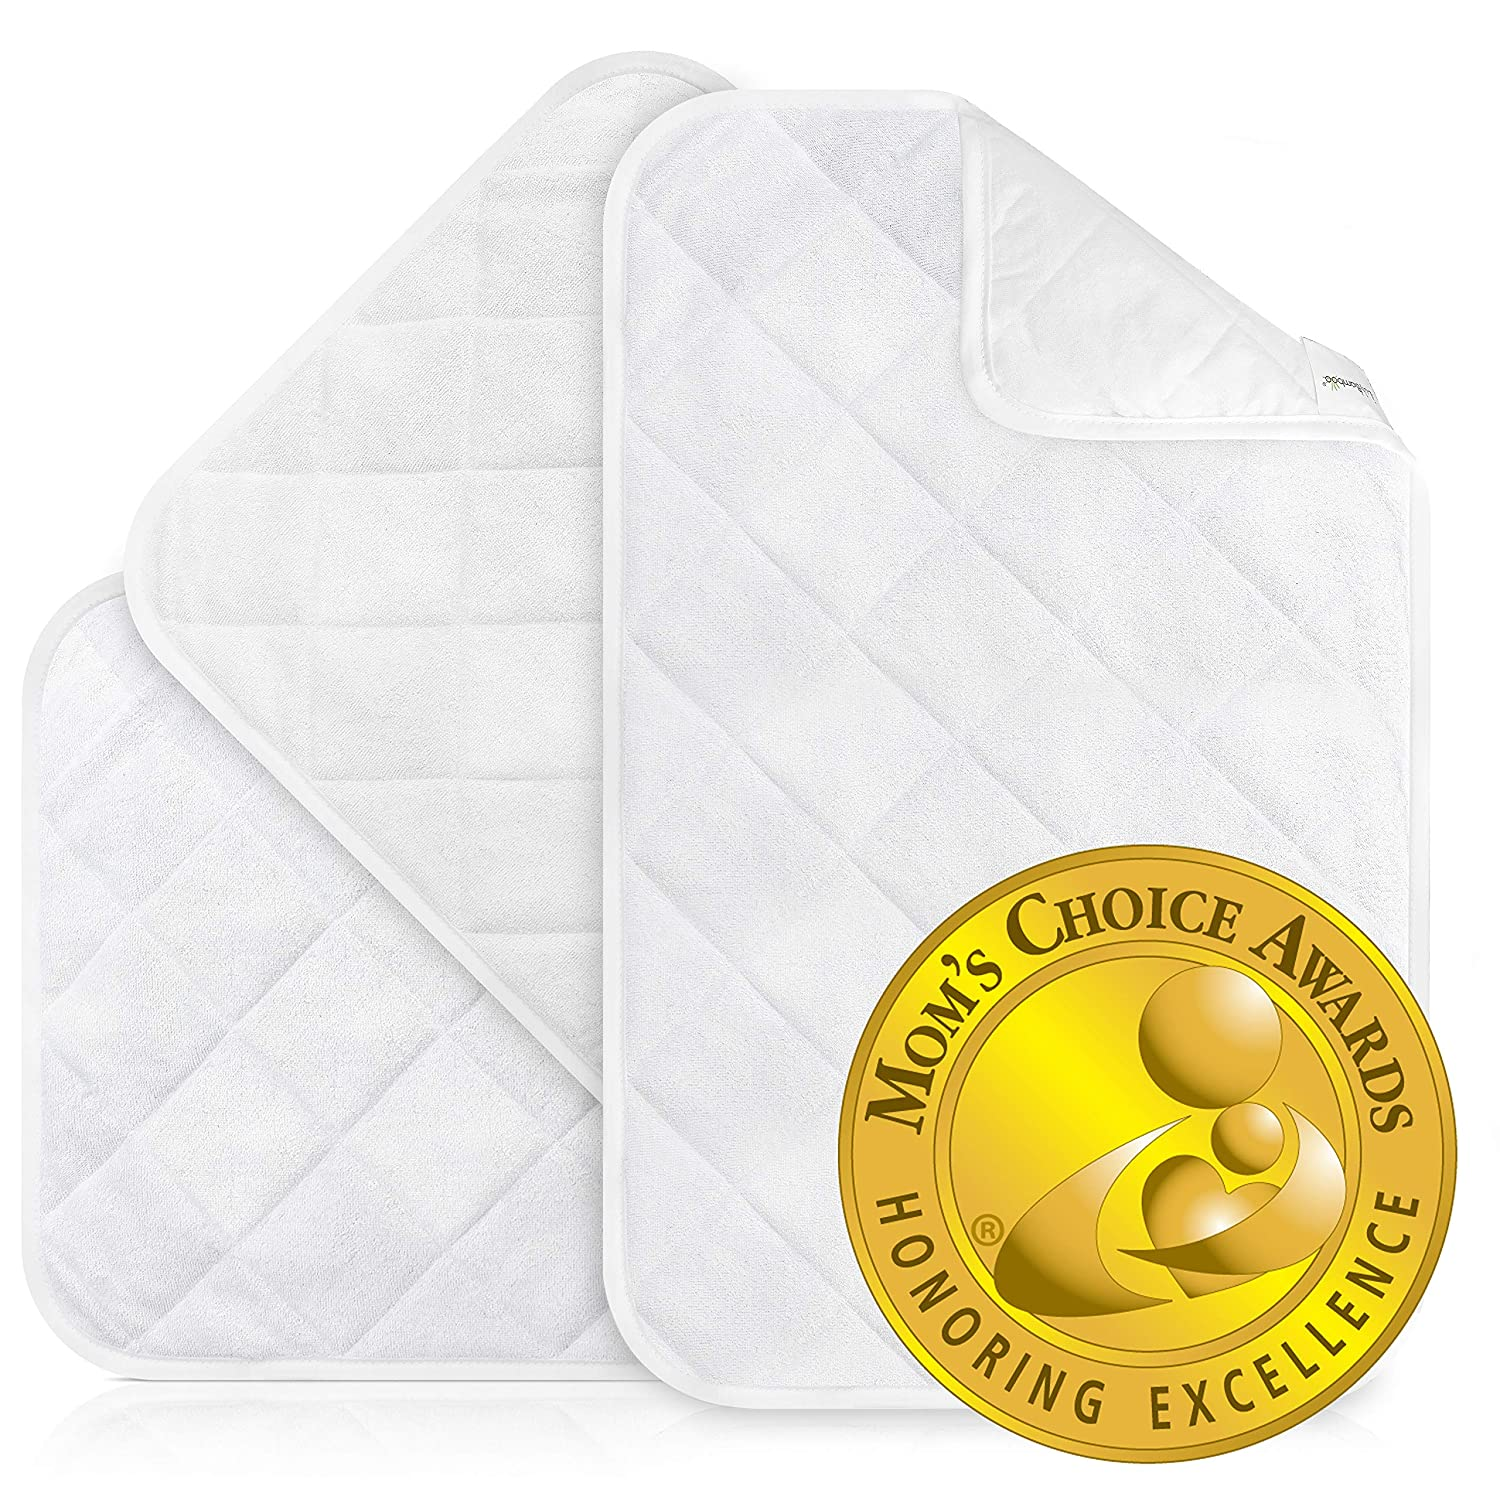 iLuvBamboo San Francisco Mall Waterproof Changing Pad Liners Awa Sales for sale Gold Mom's Choice